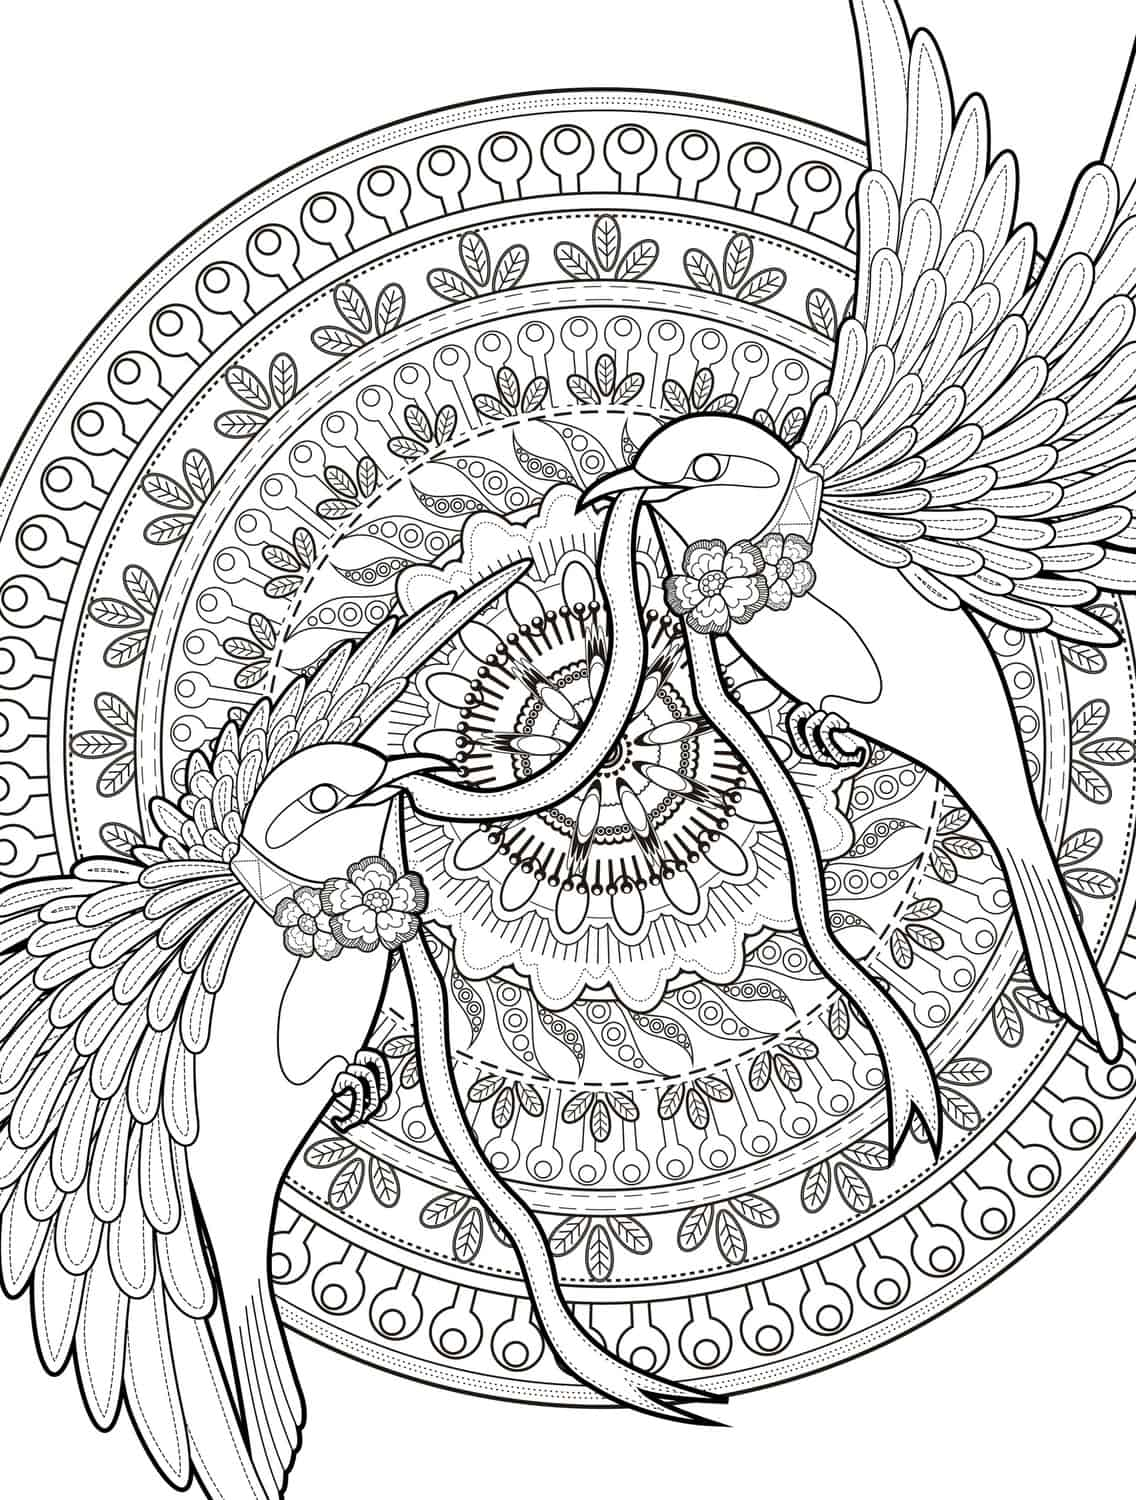 HD wallpapers coloring page websites for adults